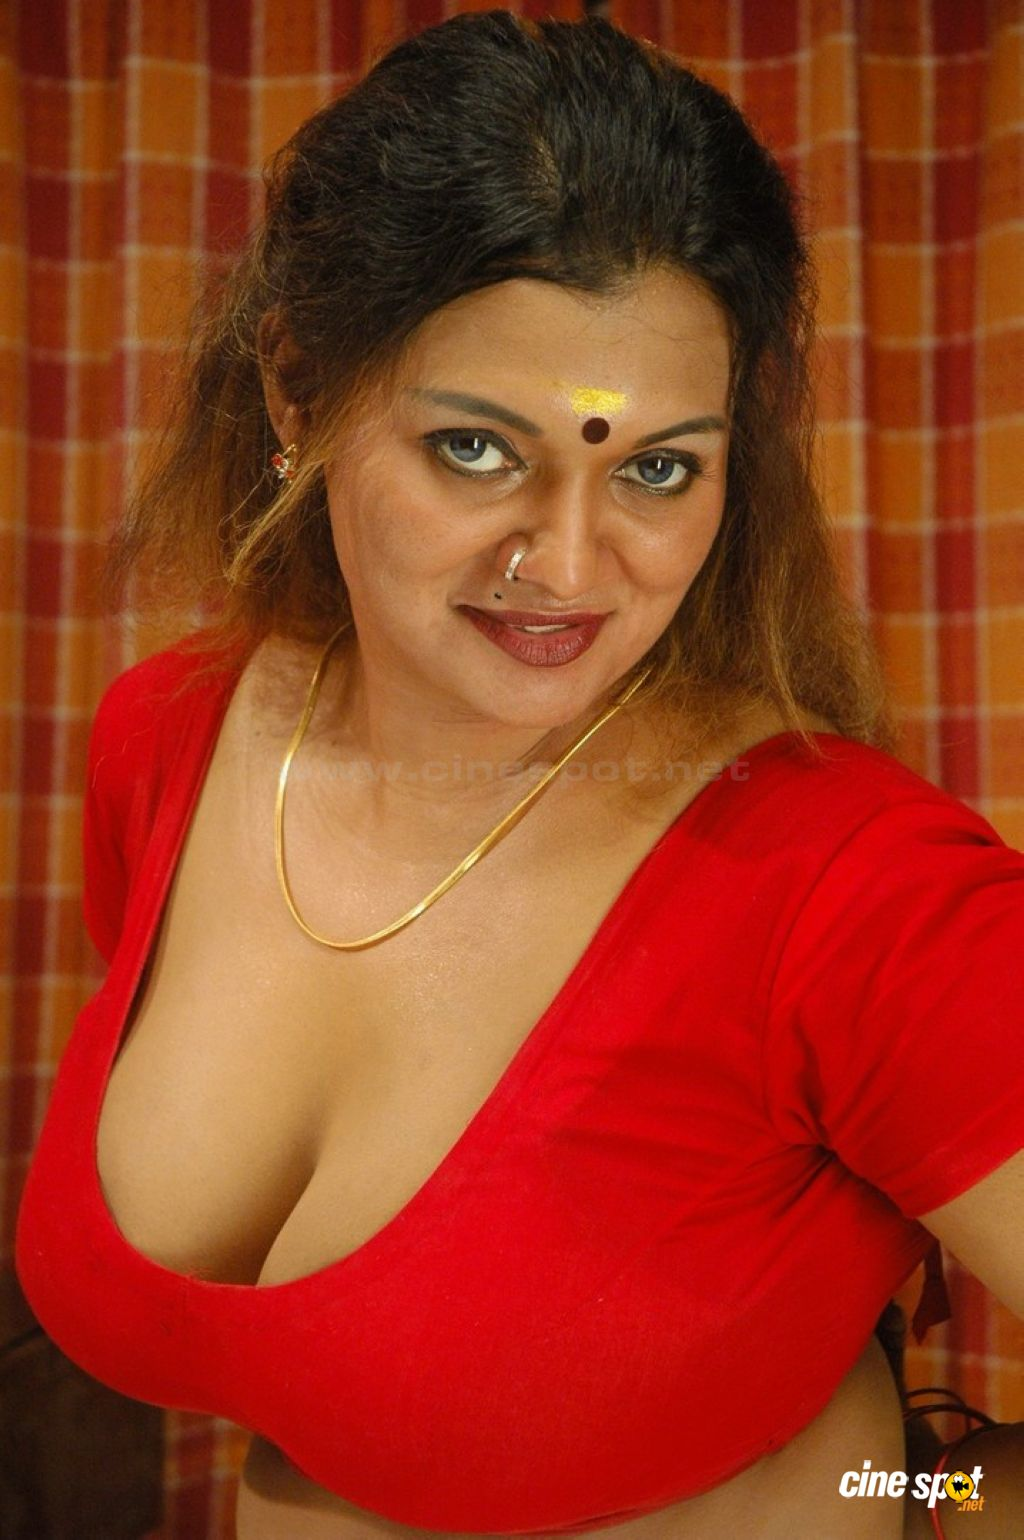 http://3.bp.blogspot.com/_DbZXuFwV48g/TK0sDqAt0mI/AAAAAAAAG8w/Dm0iCU5ssvQ/s1600/Thiruttu+Sirukki+Hot+sexy+spicy+tamil+movie+photos+%2836%29.JPG